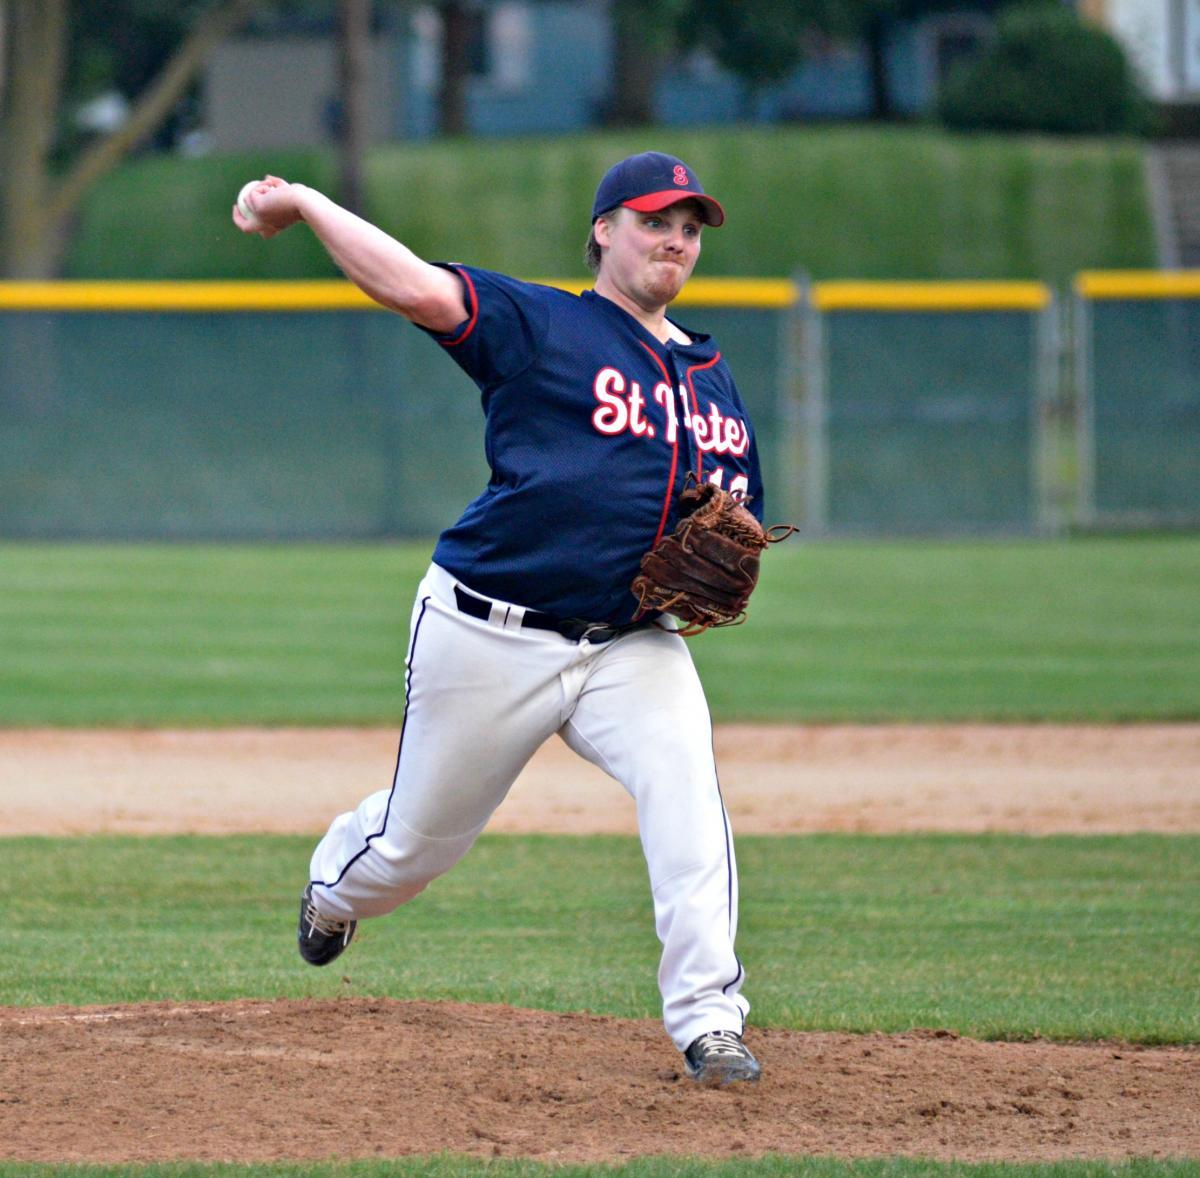 Wenner pitches gem as town team shuts out Belle Plaine